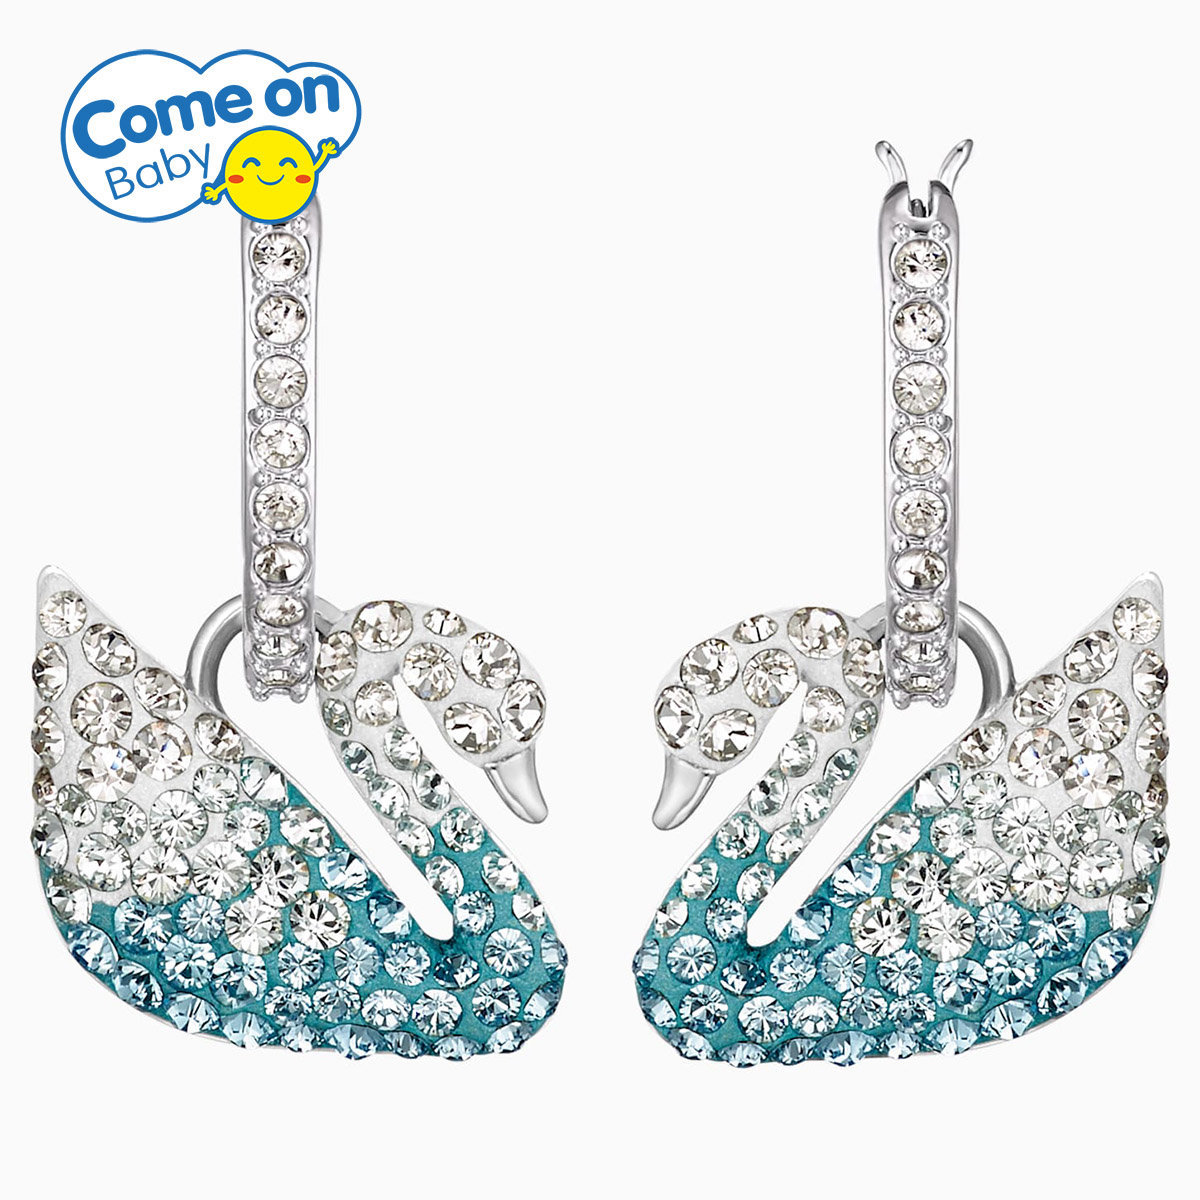 SWAROVSKI - Iconic Swan Pierced Earrings - Multi-colored, Rhodium Plated [5512577]